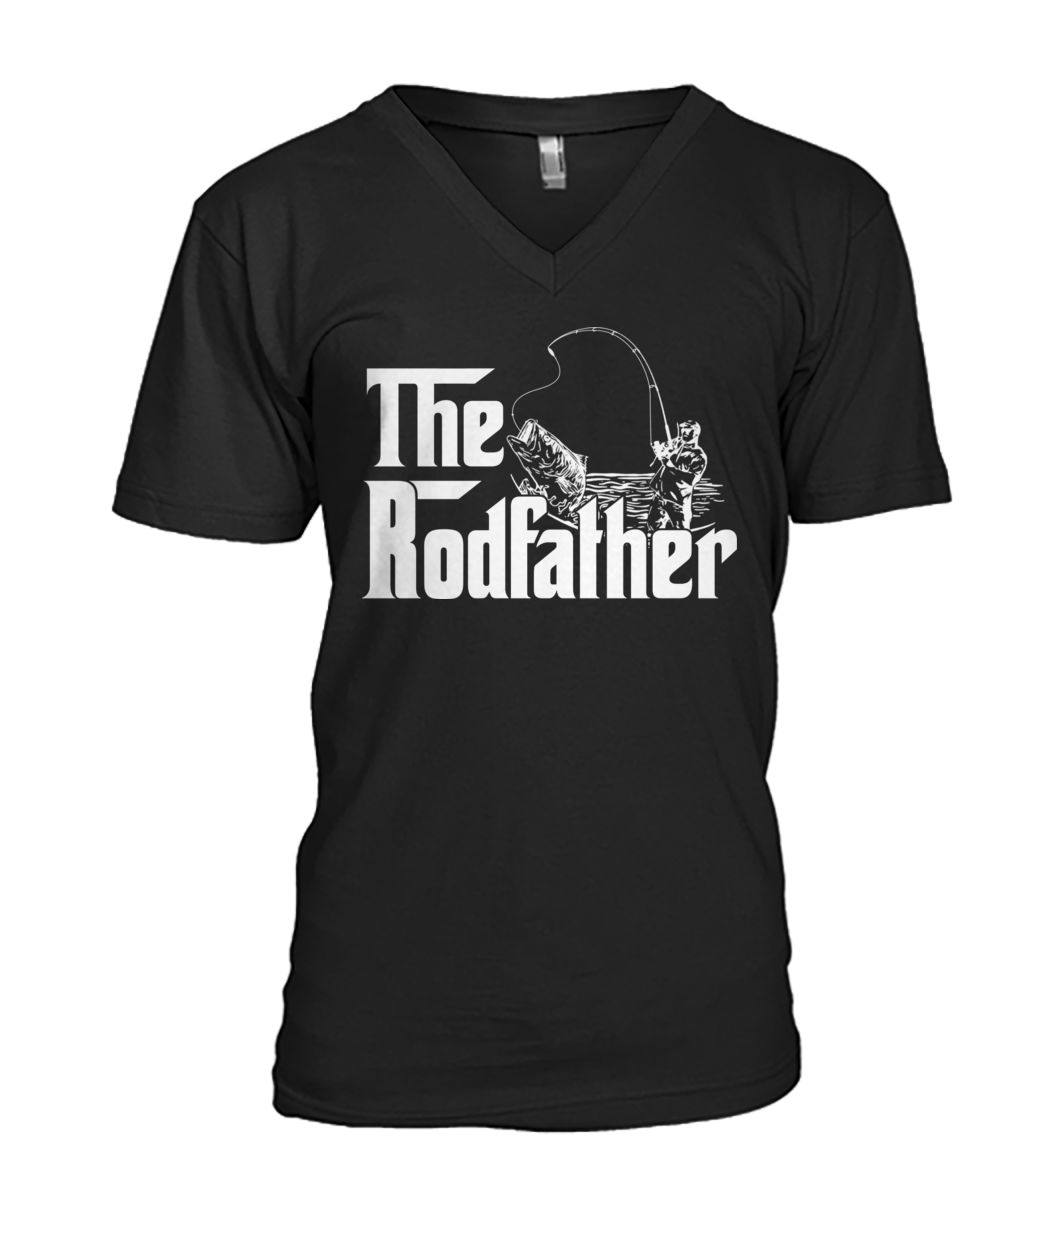 Boat fish rod the rodfather fishing mens v-neck